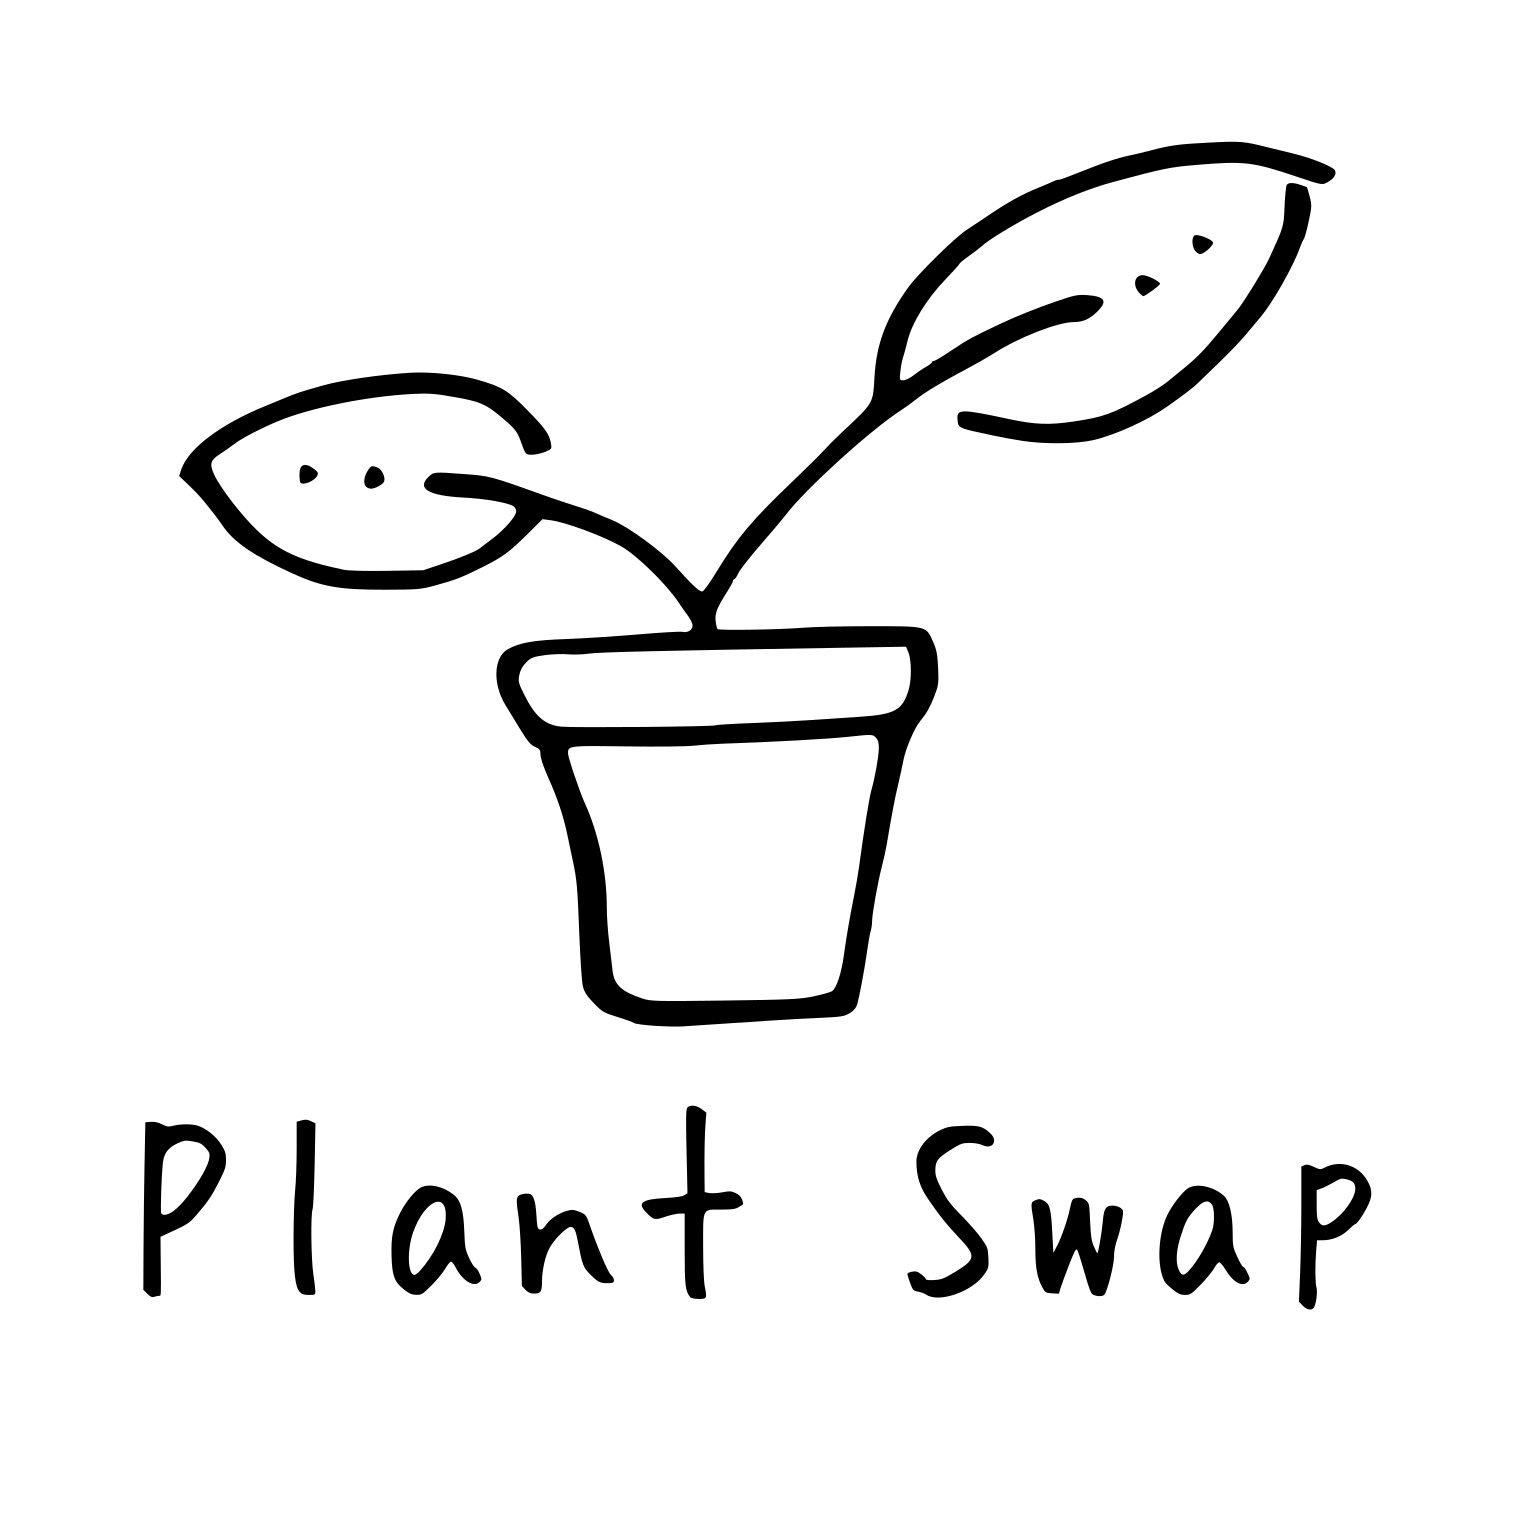 Plantswap_and_logo.png